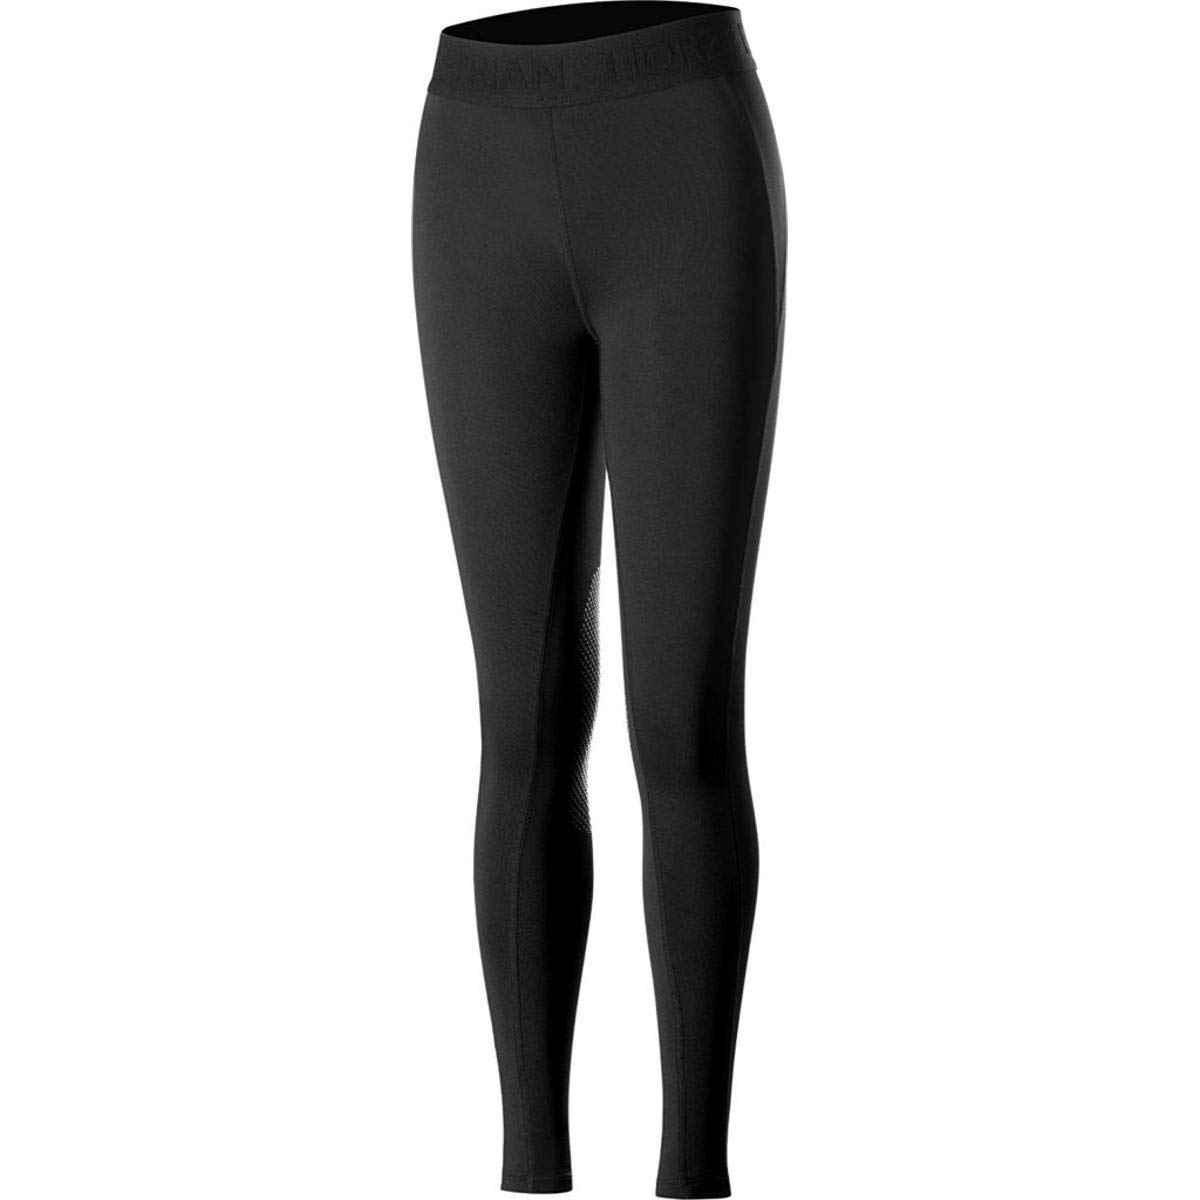 Horze Elsa Kids Silicone Knee Patch Tights - Black - X Small